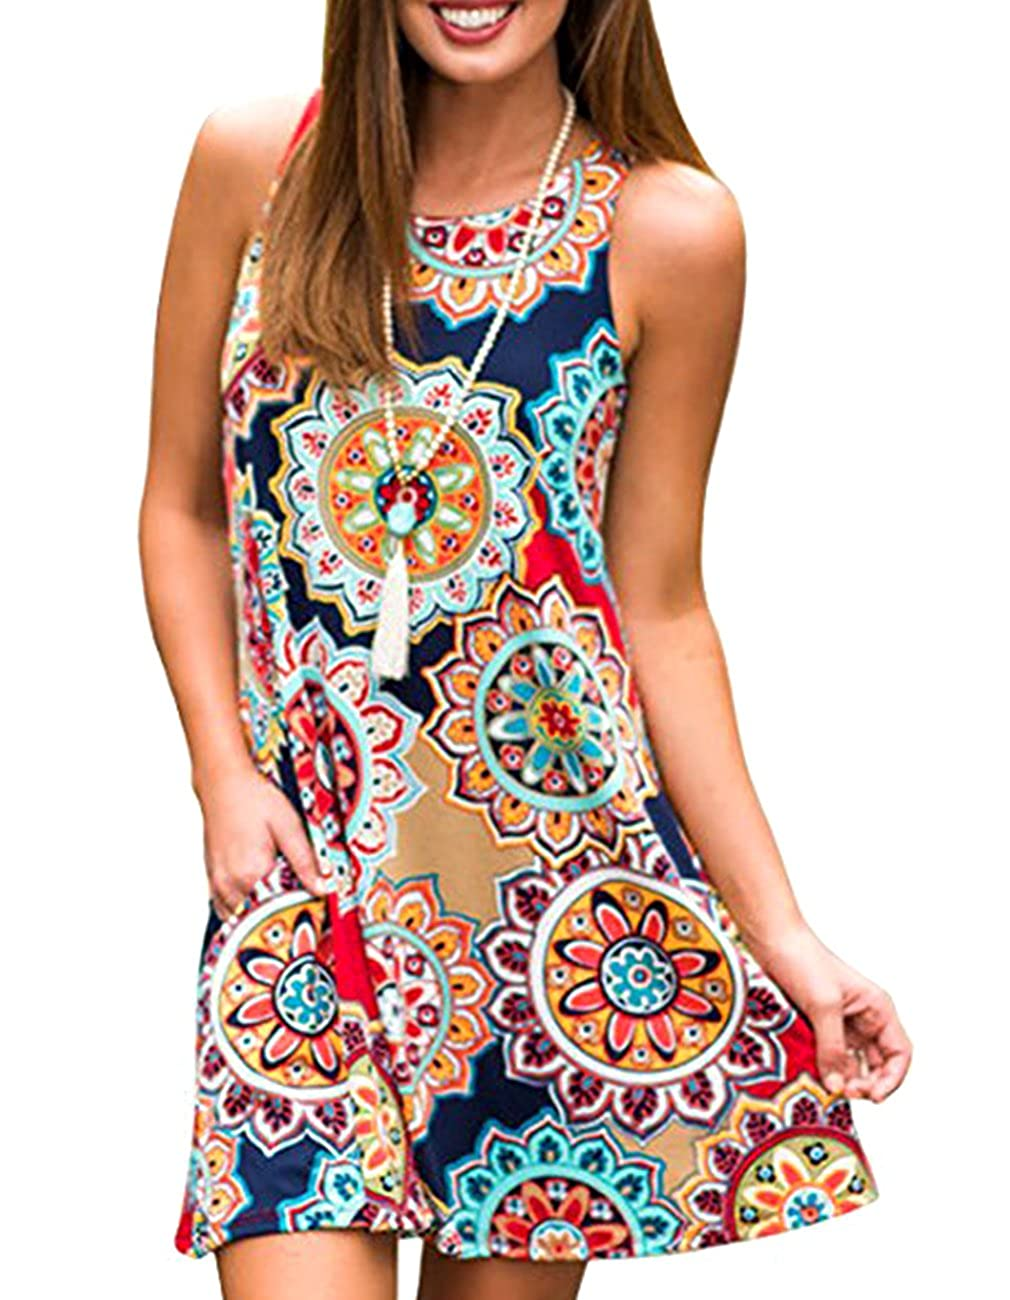 7fc1b993882 Sleeveless women blouse fashion t shirt dress pullover loose fit casual  summer ...